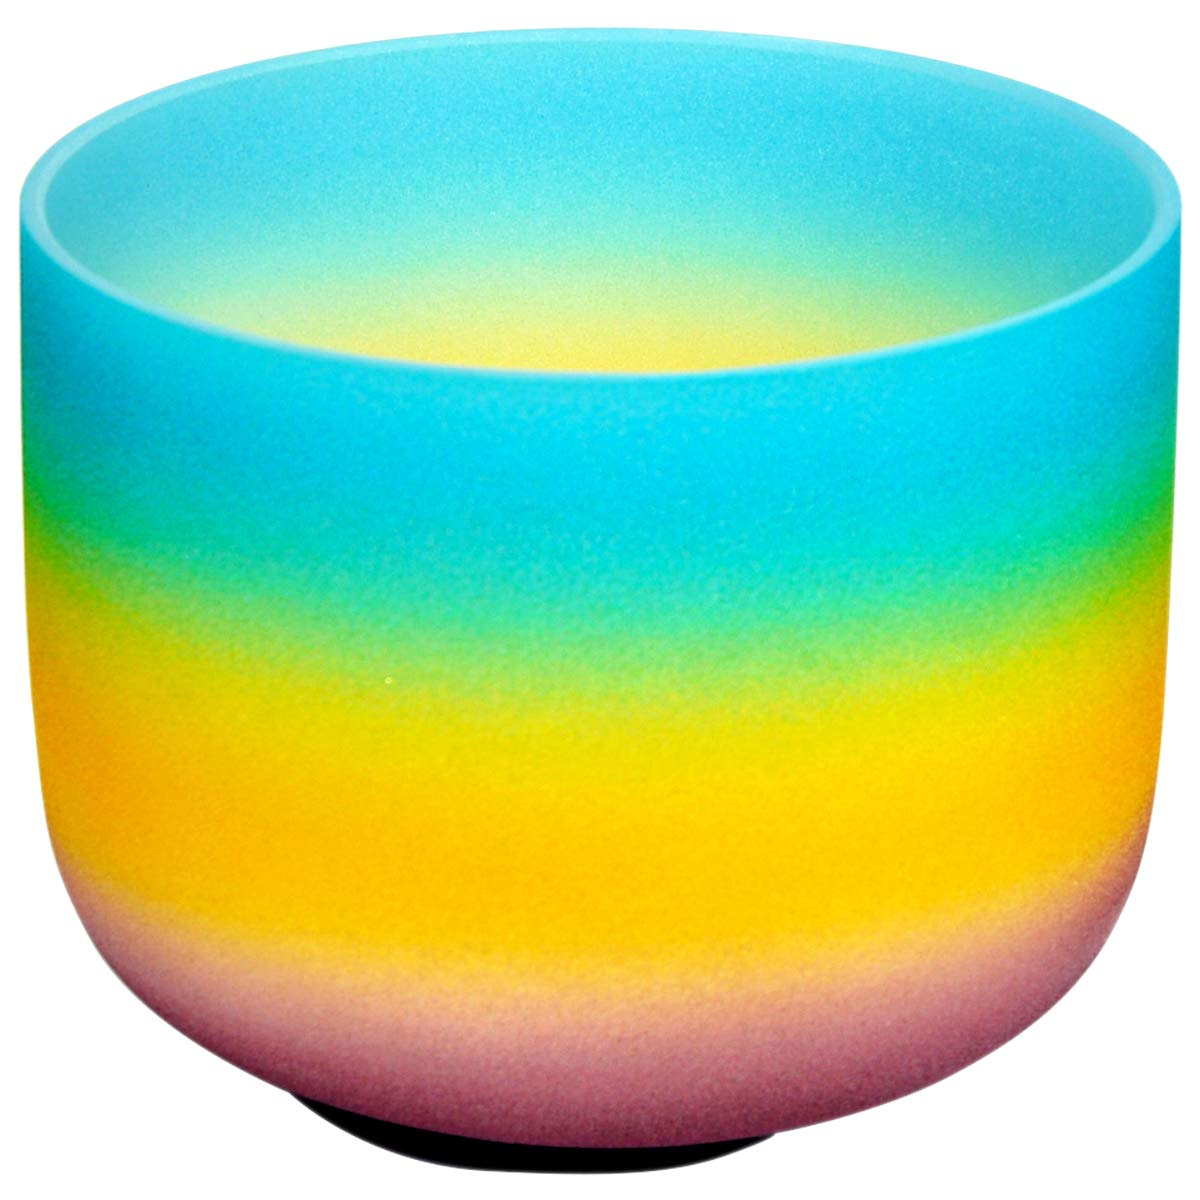 14 Inch 432Hz Rainbow Indigo Frosted Crystal Singing Bowl Note G Throat Chakra Best Quality Sound & Material (O Ring & Transparent Rubber Mallet Included) by Antetok (Image #1)